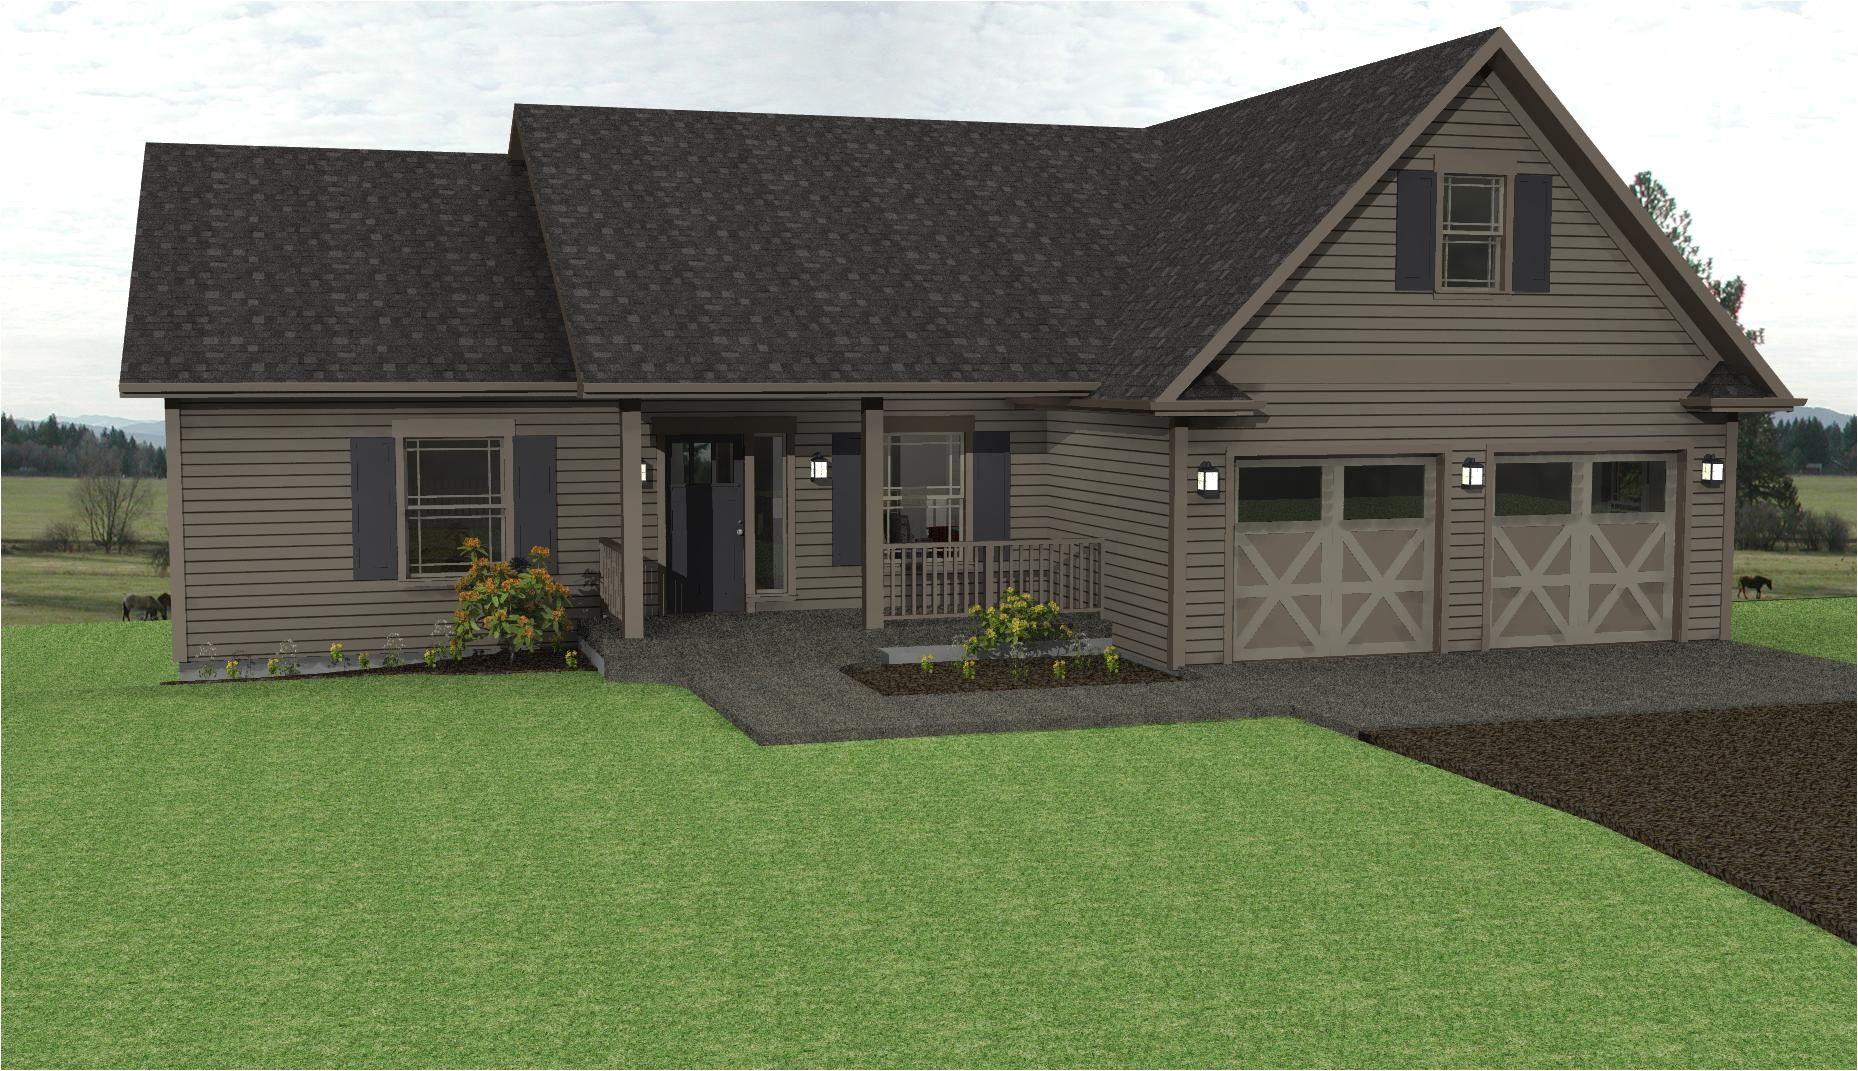 Country Ranch Home Plans Country Ranch Home Plans Find House Plans